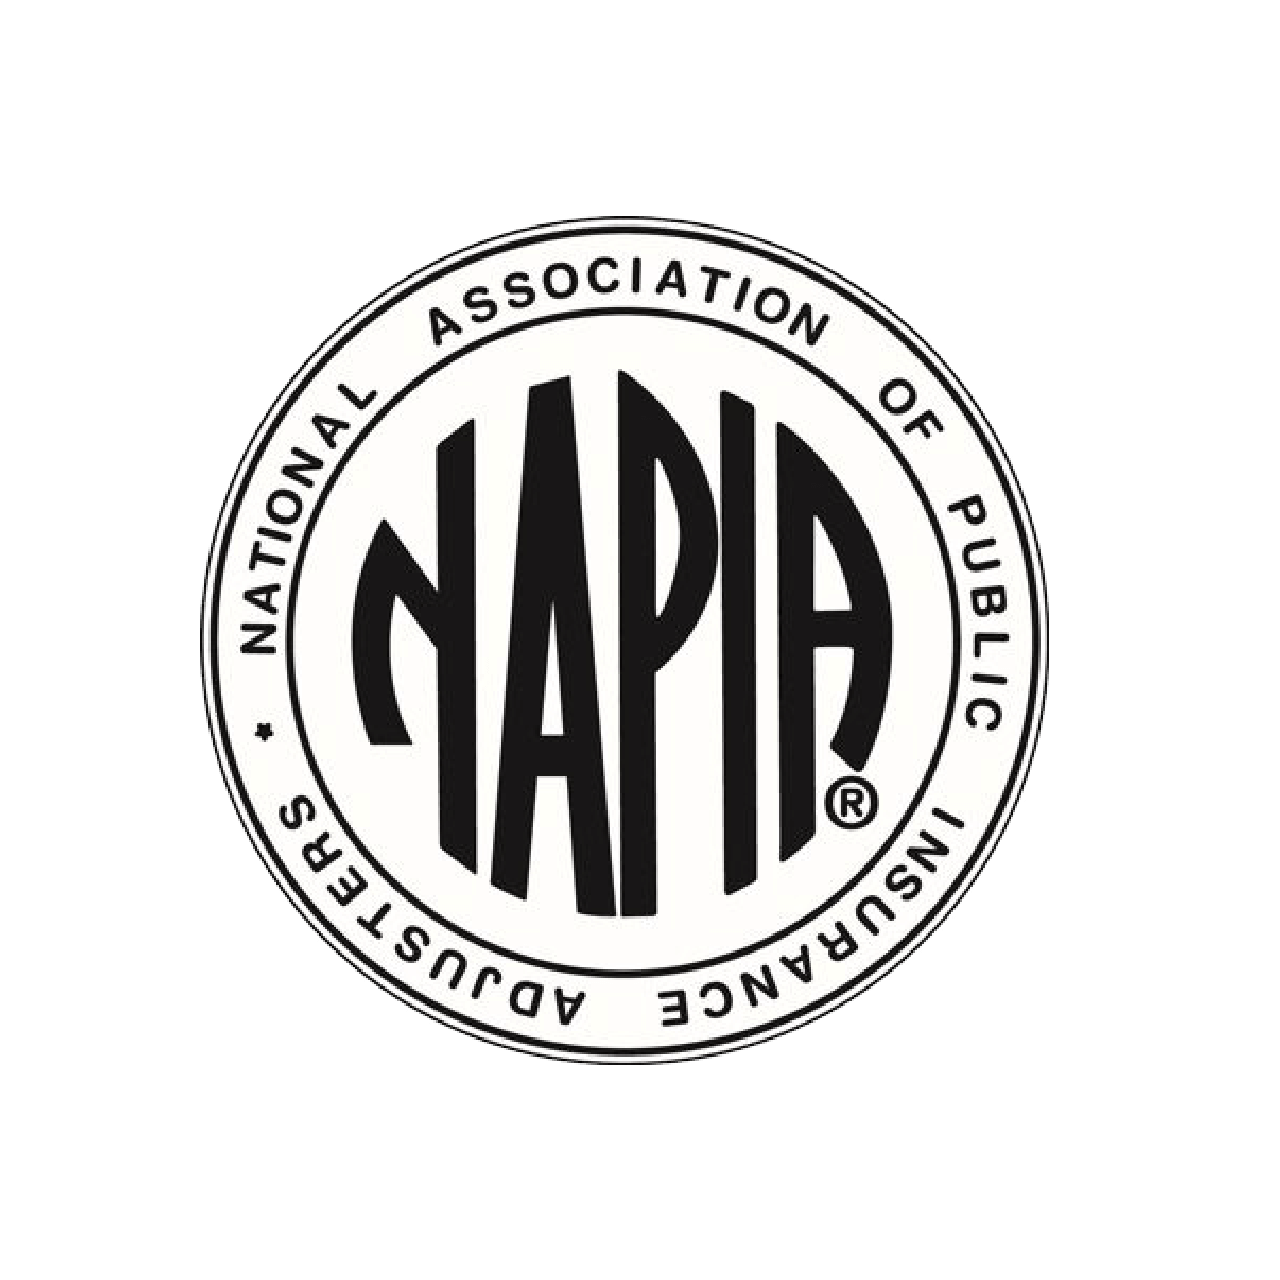 Strategic Claim Consultants is a member of the National Association of Public Insurance Adjusters